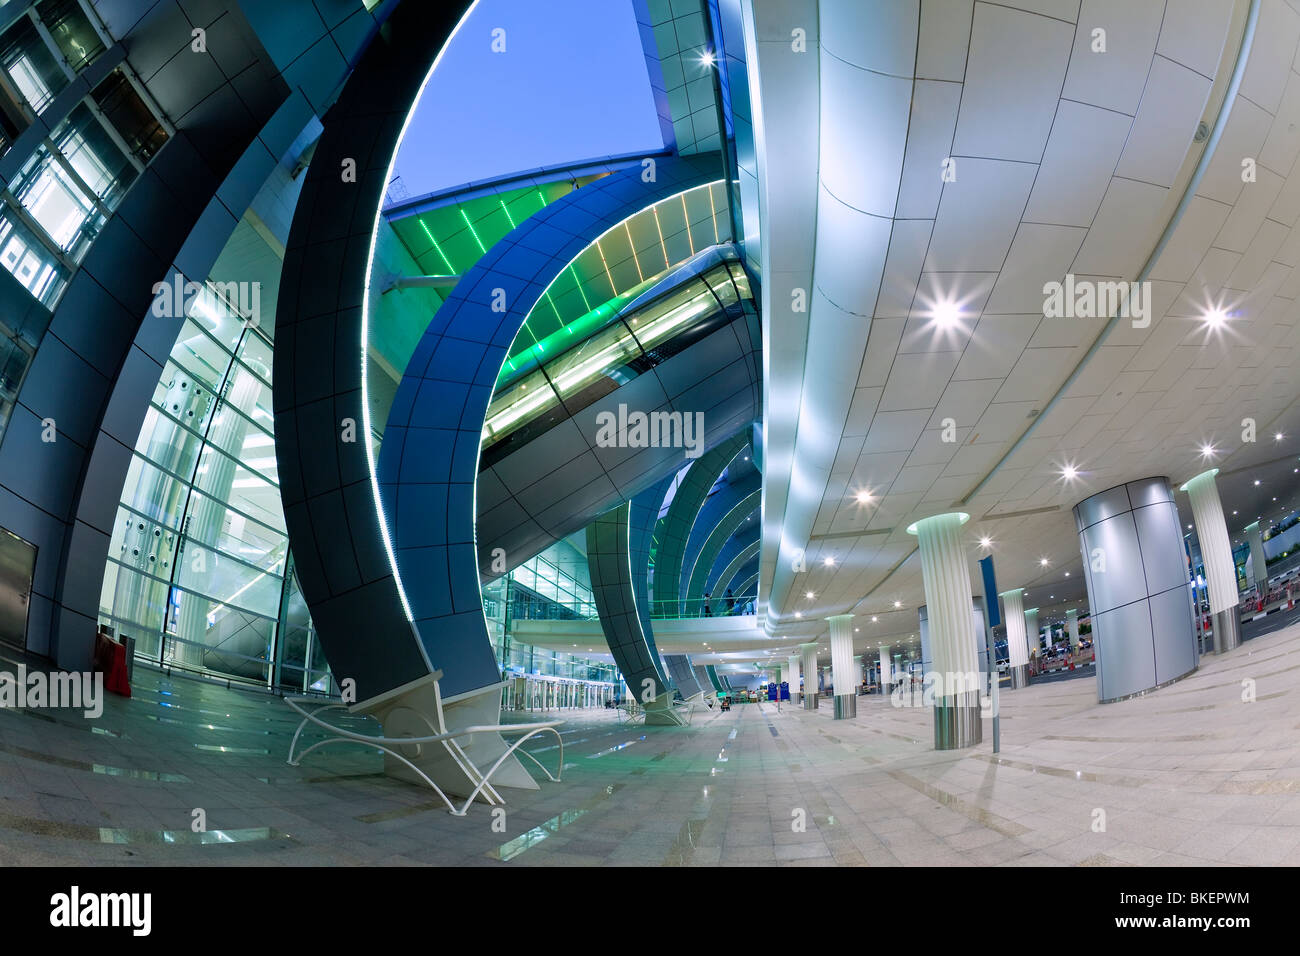 Stylish modern architecture of the 2010 opened Terminal 3 of Dubai International Airport, Dubai, UAE, United Arab - Stock Image